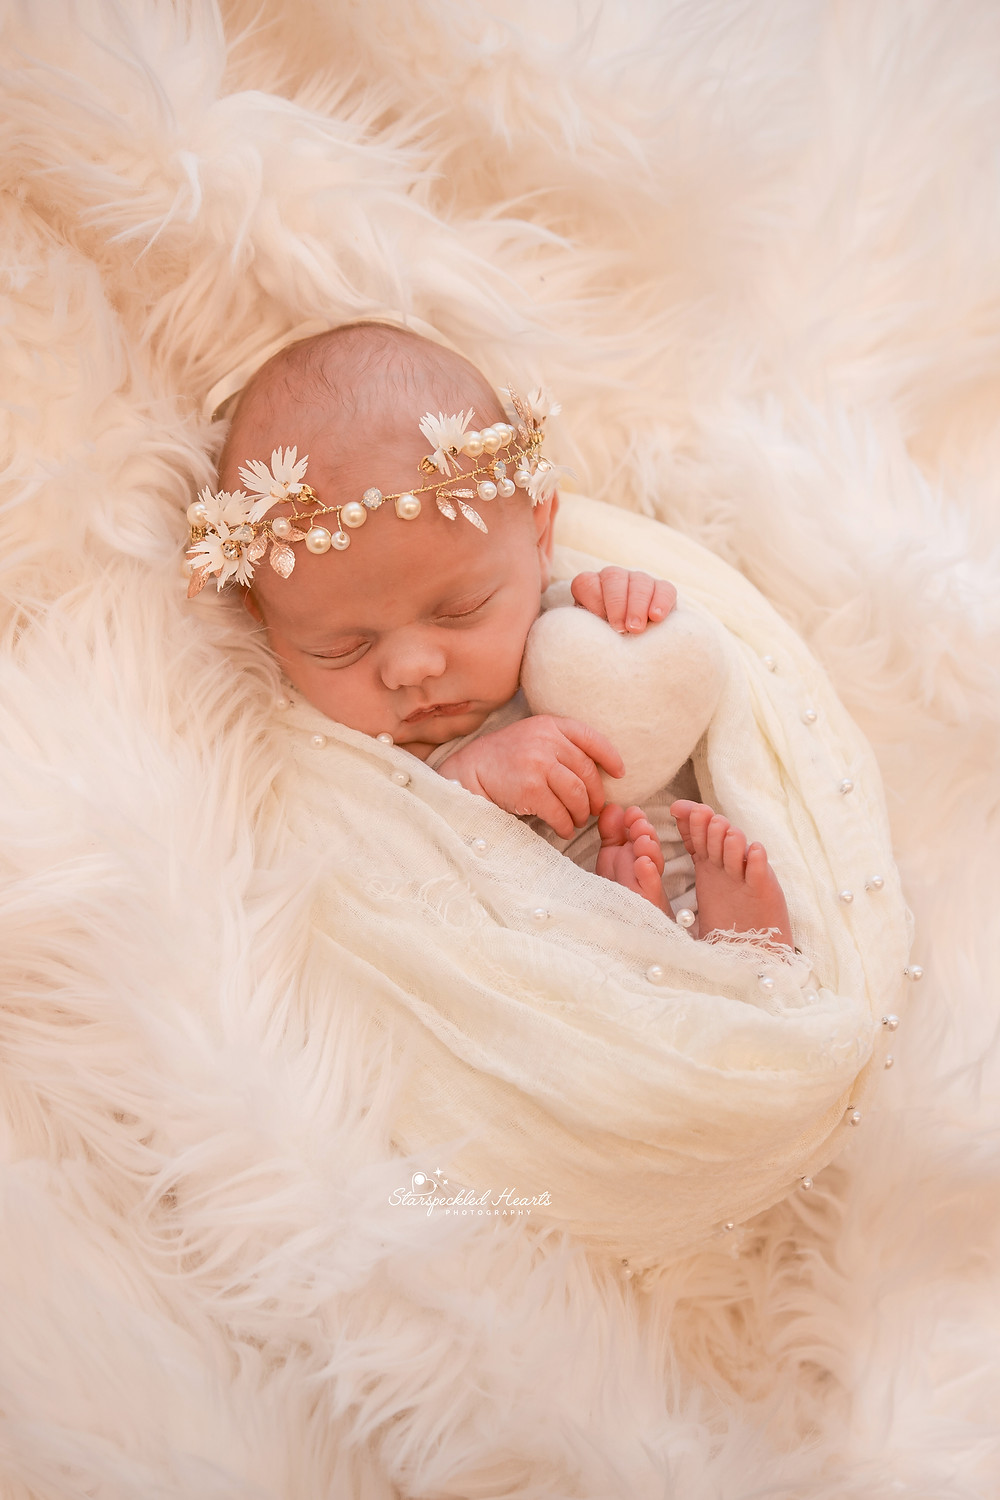 newborn girl wrapped in a white pearl wrap wearing a matching pearl tiara